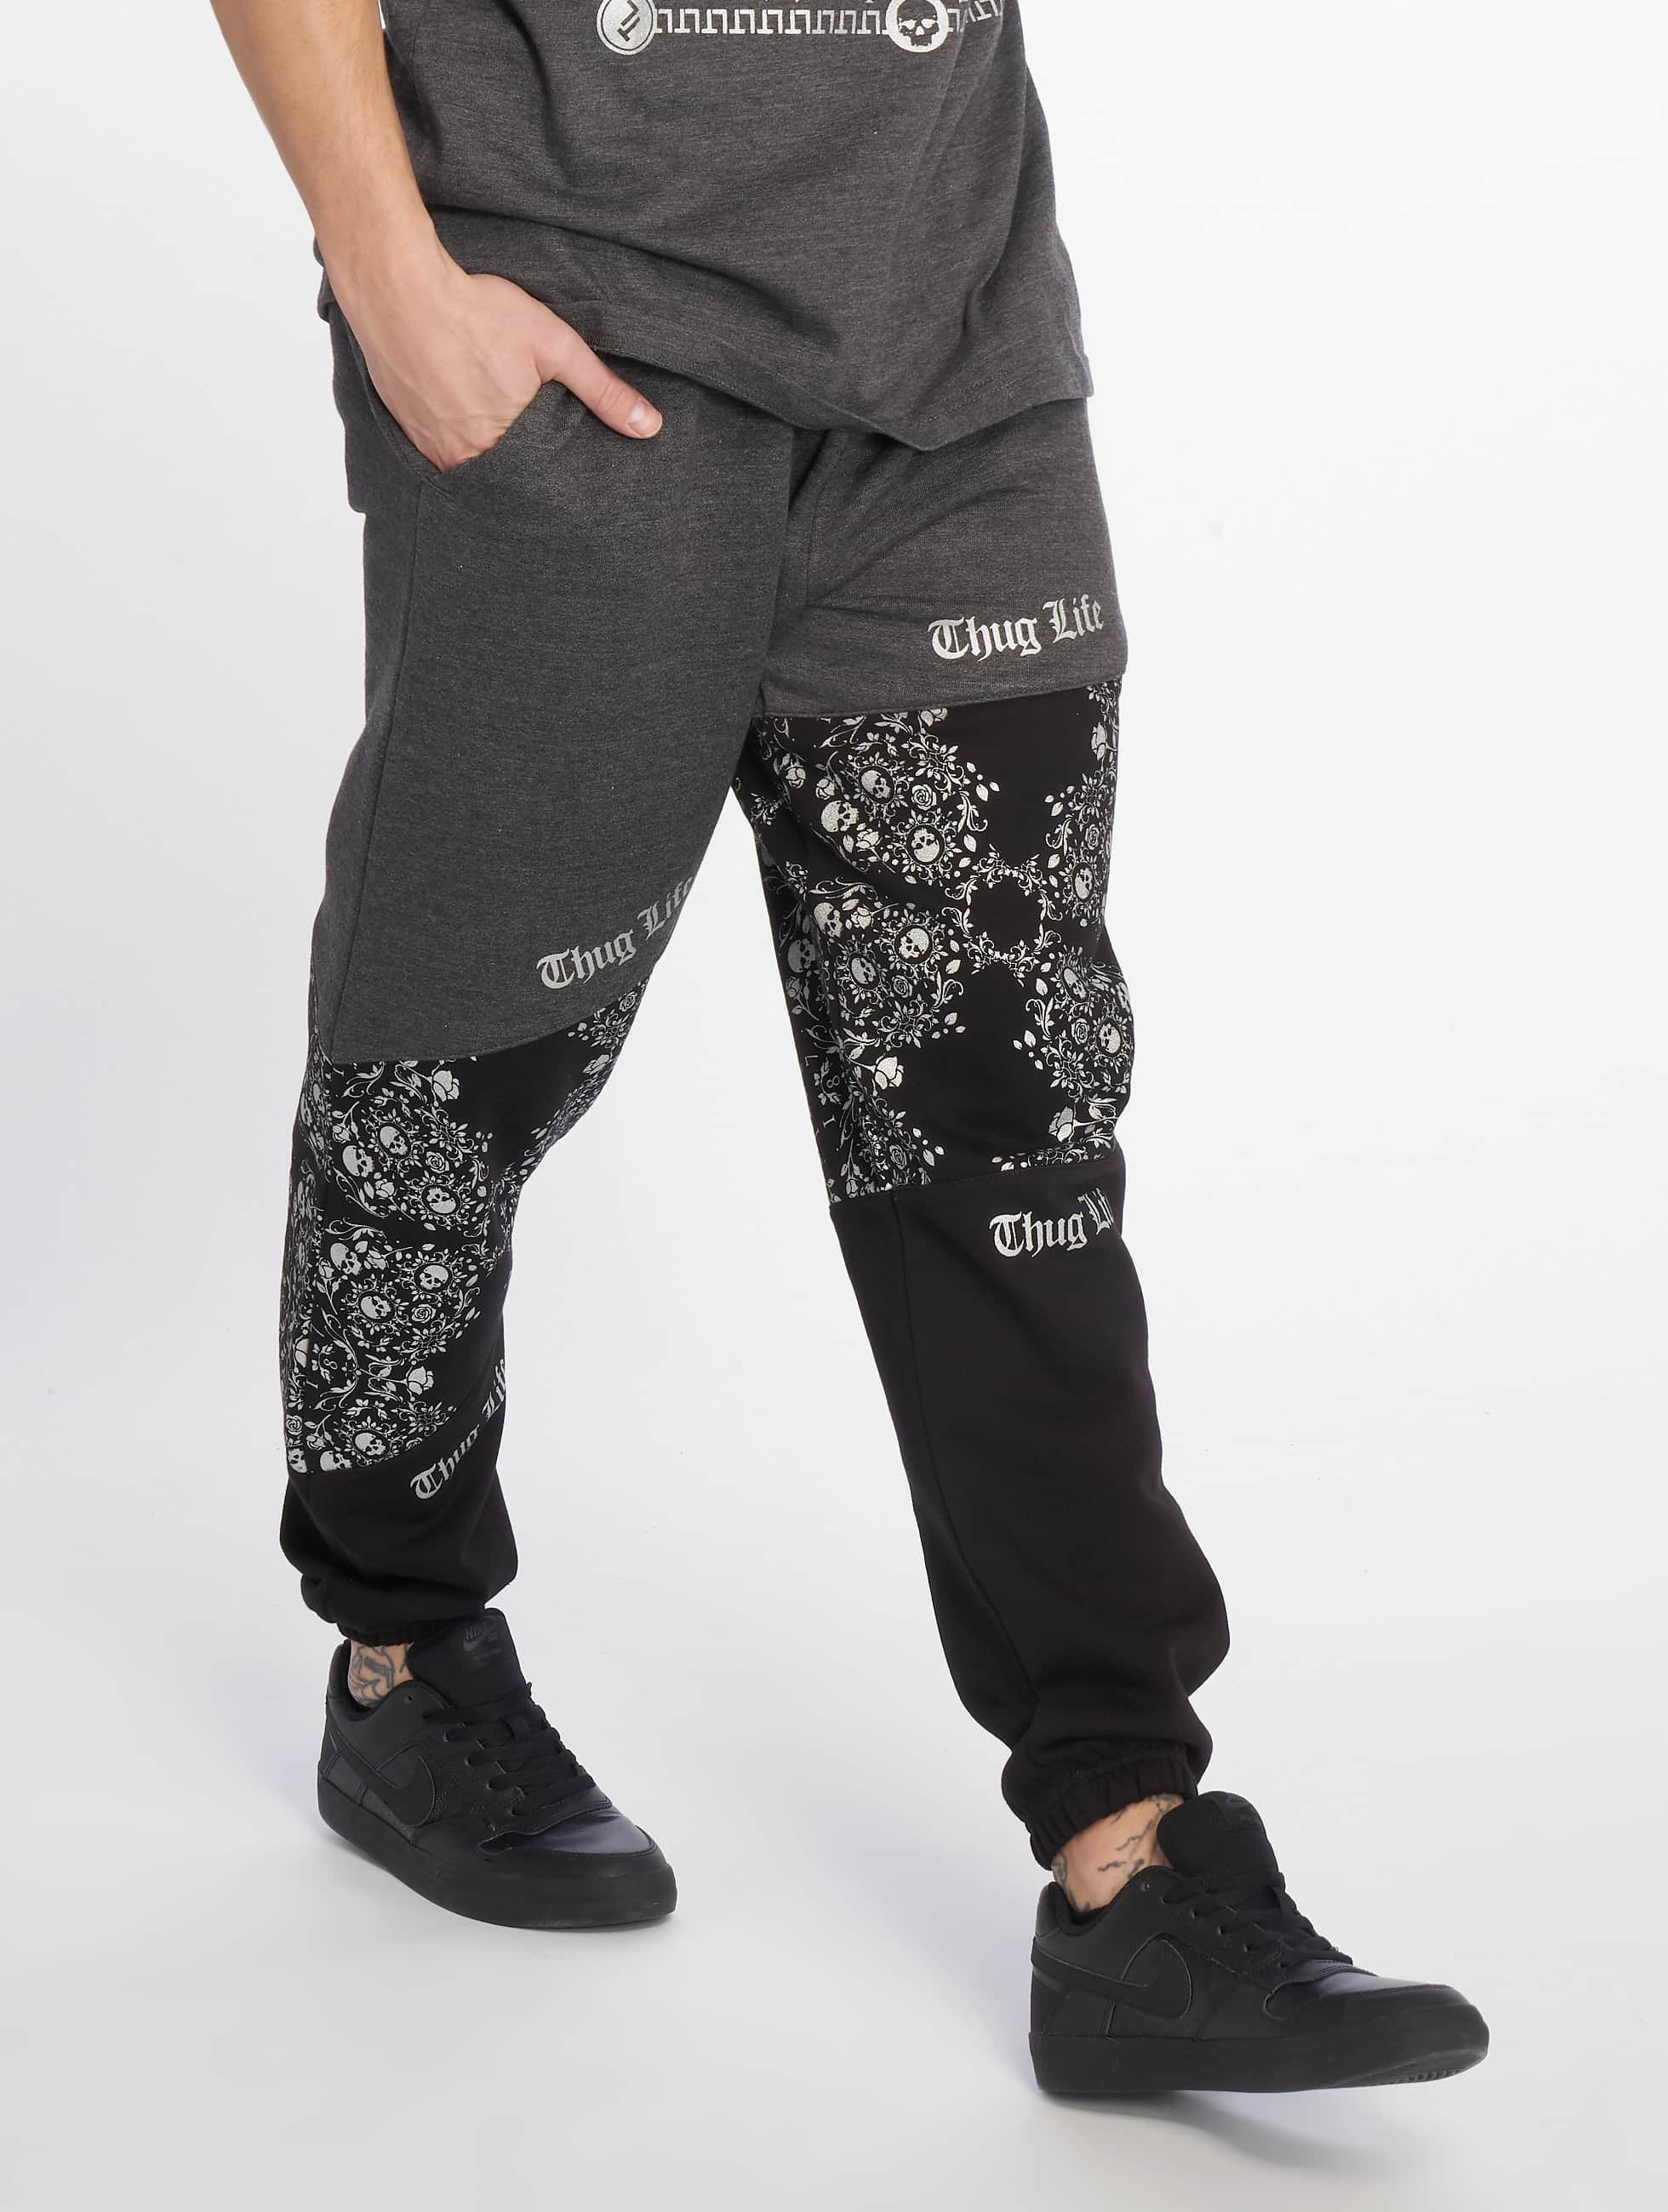 Thug Life / Sweat Pant Hamite in grey XL